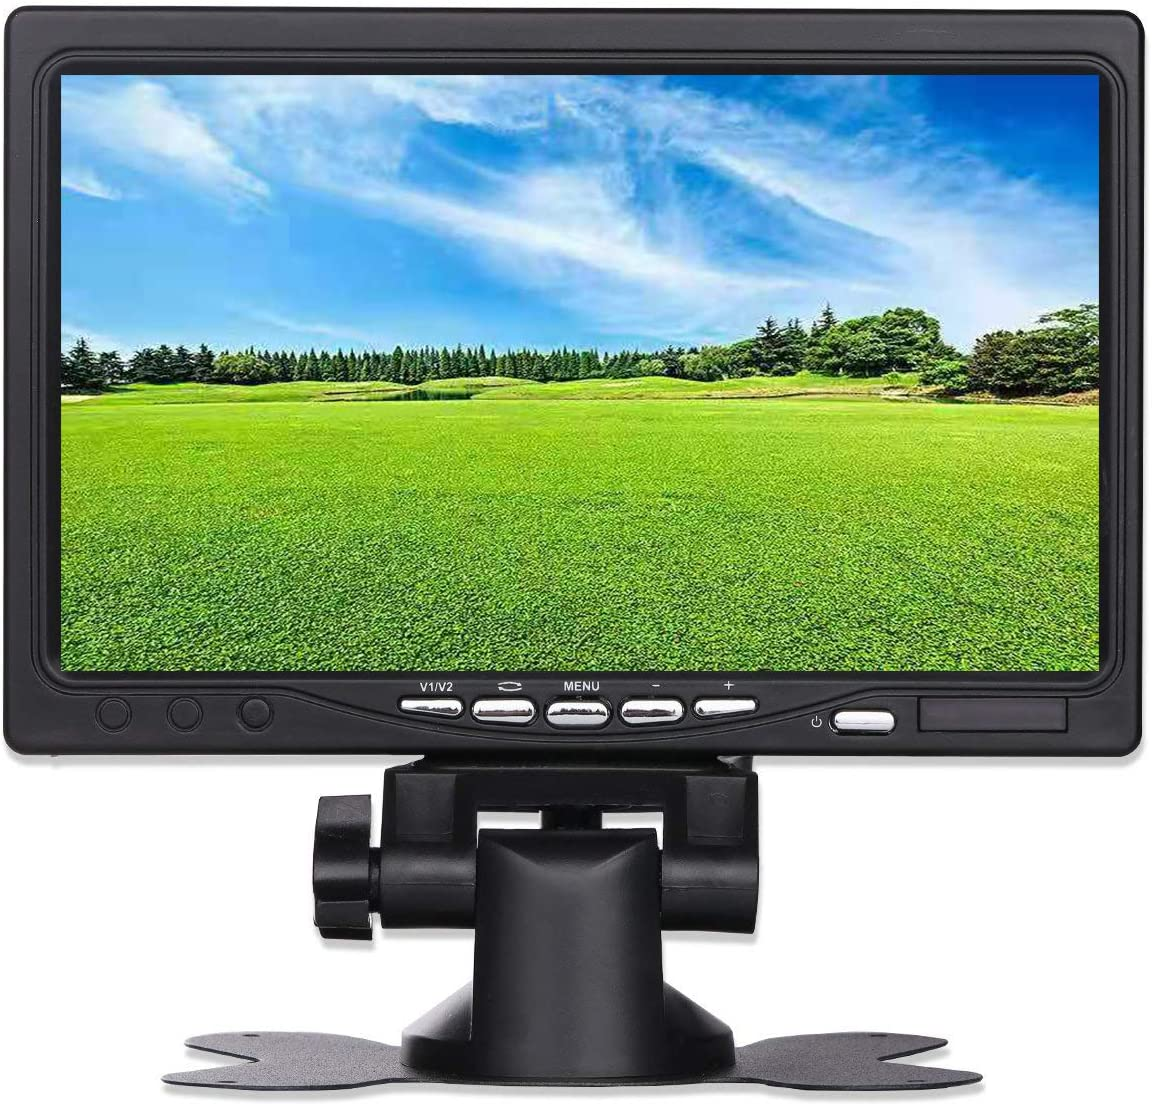 Amazon.com: UOTOO 7 inch Small Portable HDMI VGA 1024x600 HD LCD Monitor  for PC Laptop, TV, Security Camera, Raspberry pi 3 Display Screen Monitor,  Video HDMI Monitor, Build in Speaker: Computers &